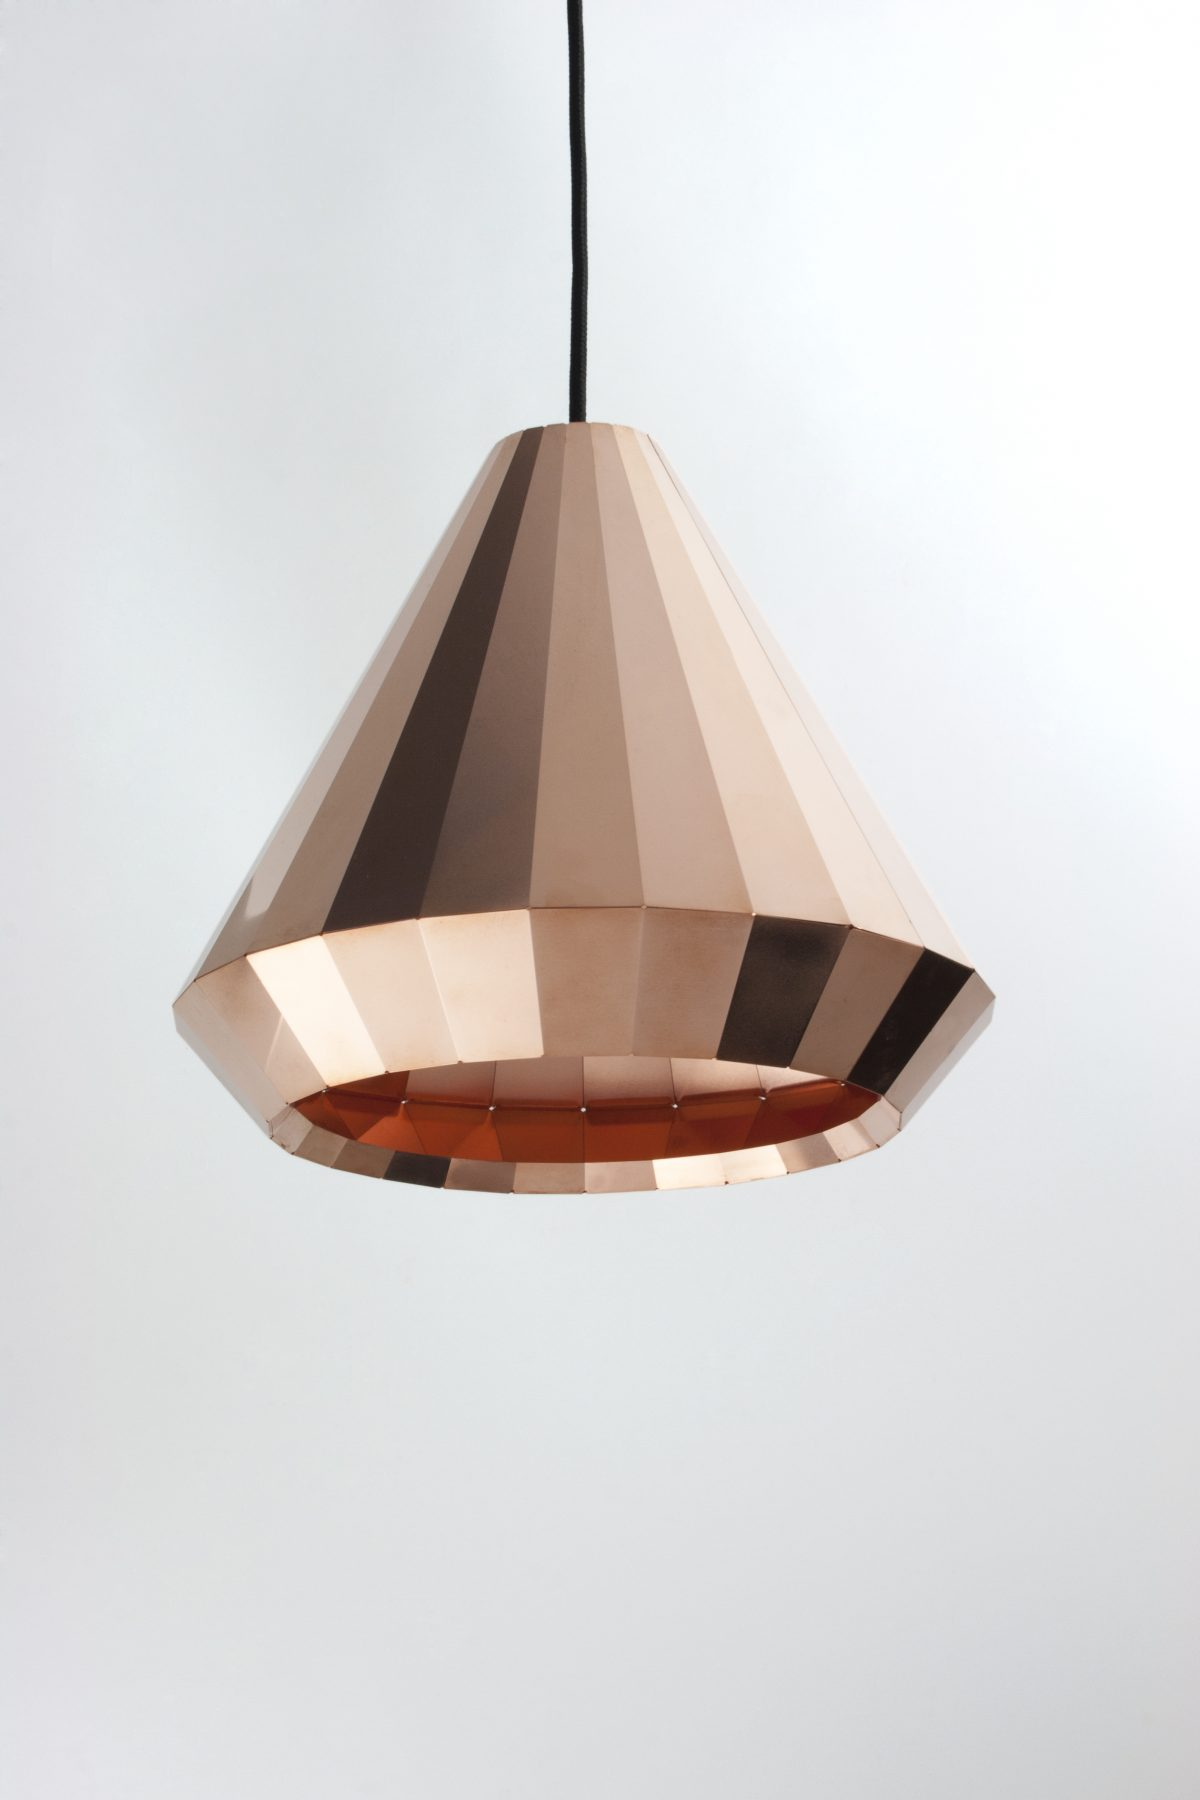 Koperen hanglamp CL-25 – David Derksen Design